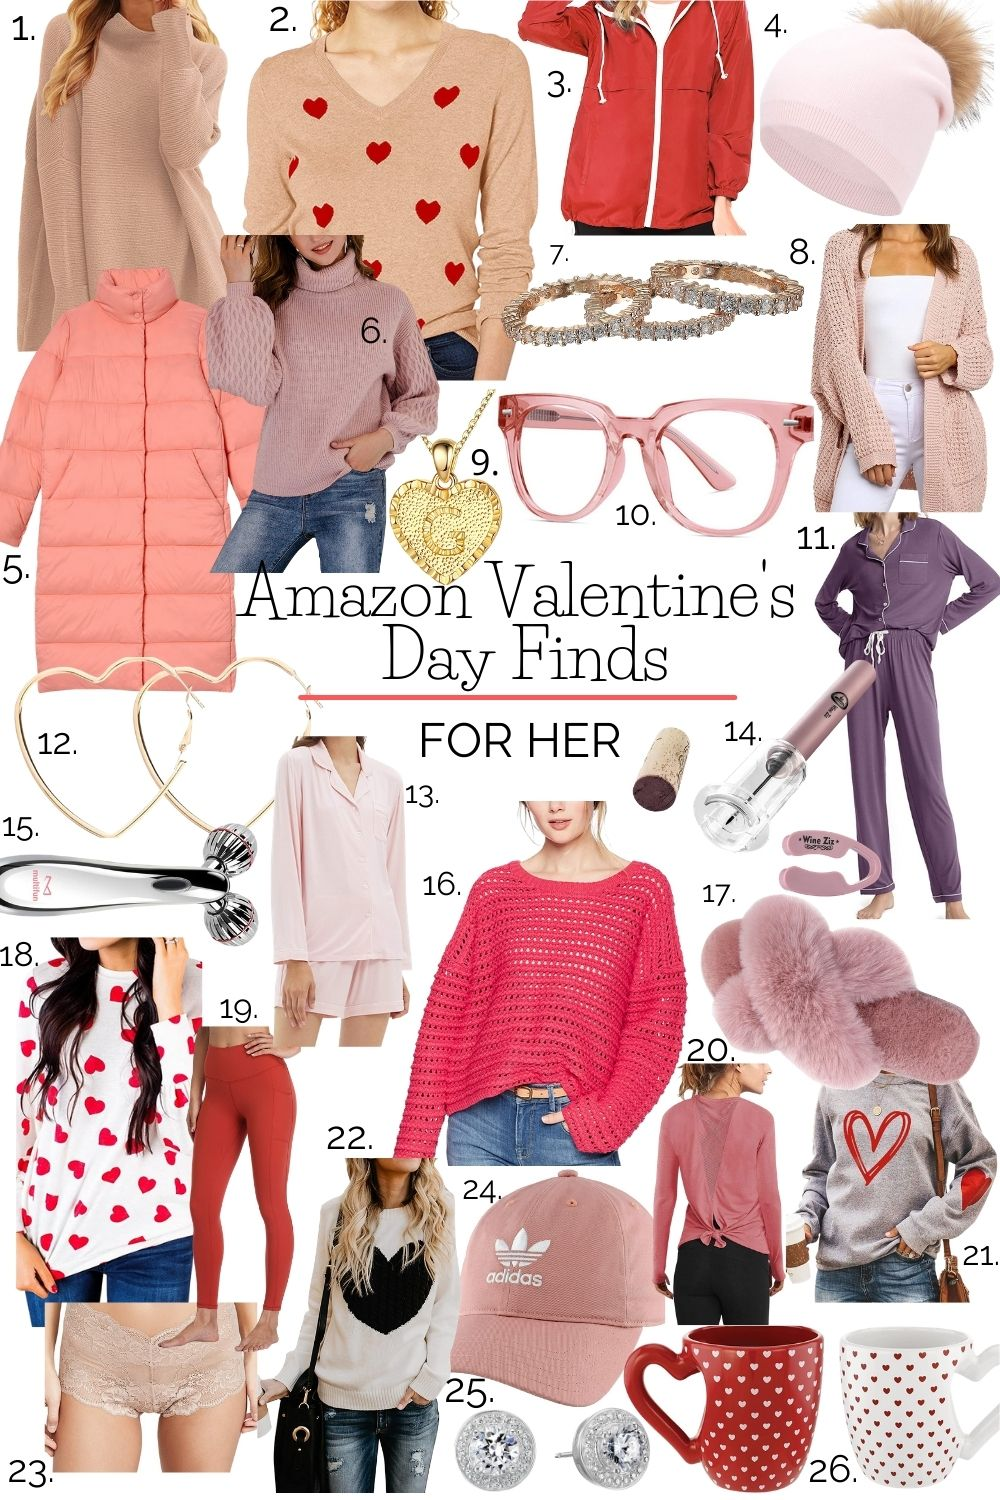 Amazon Valentine's Day Favorites for Her